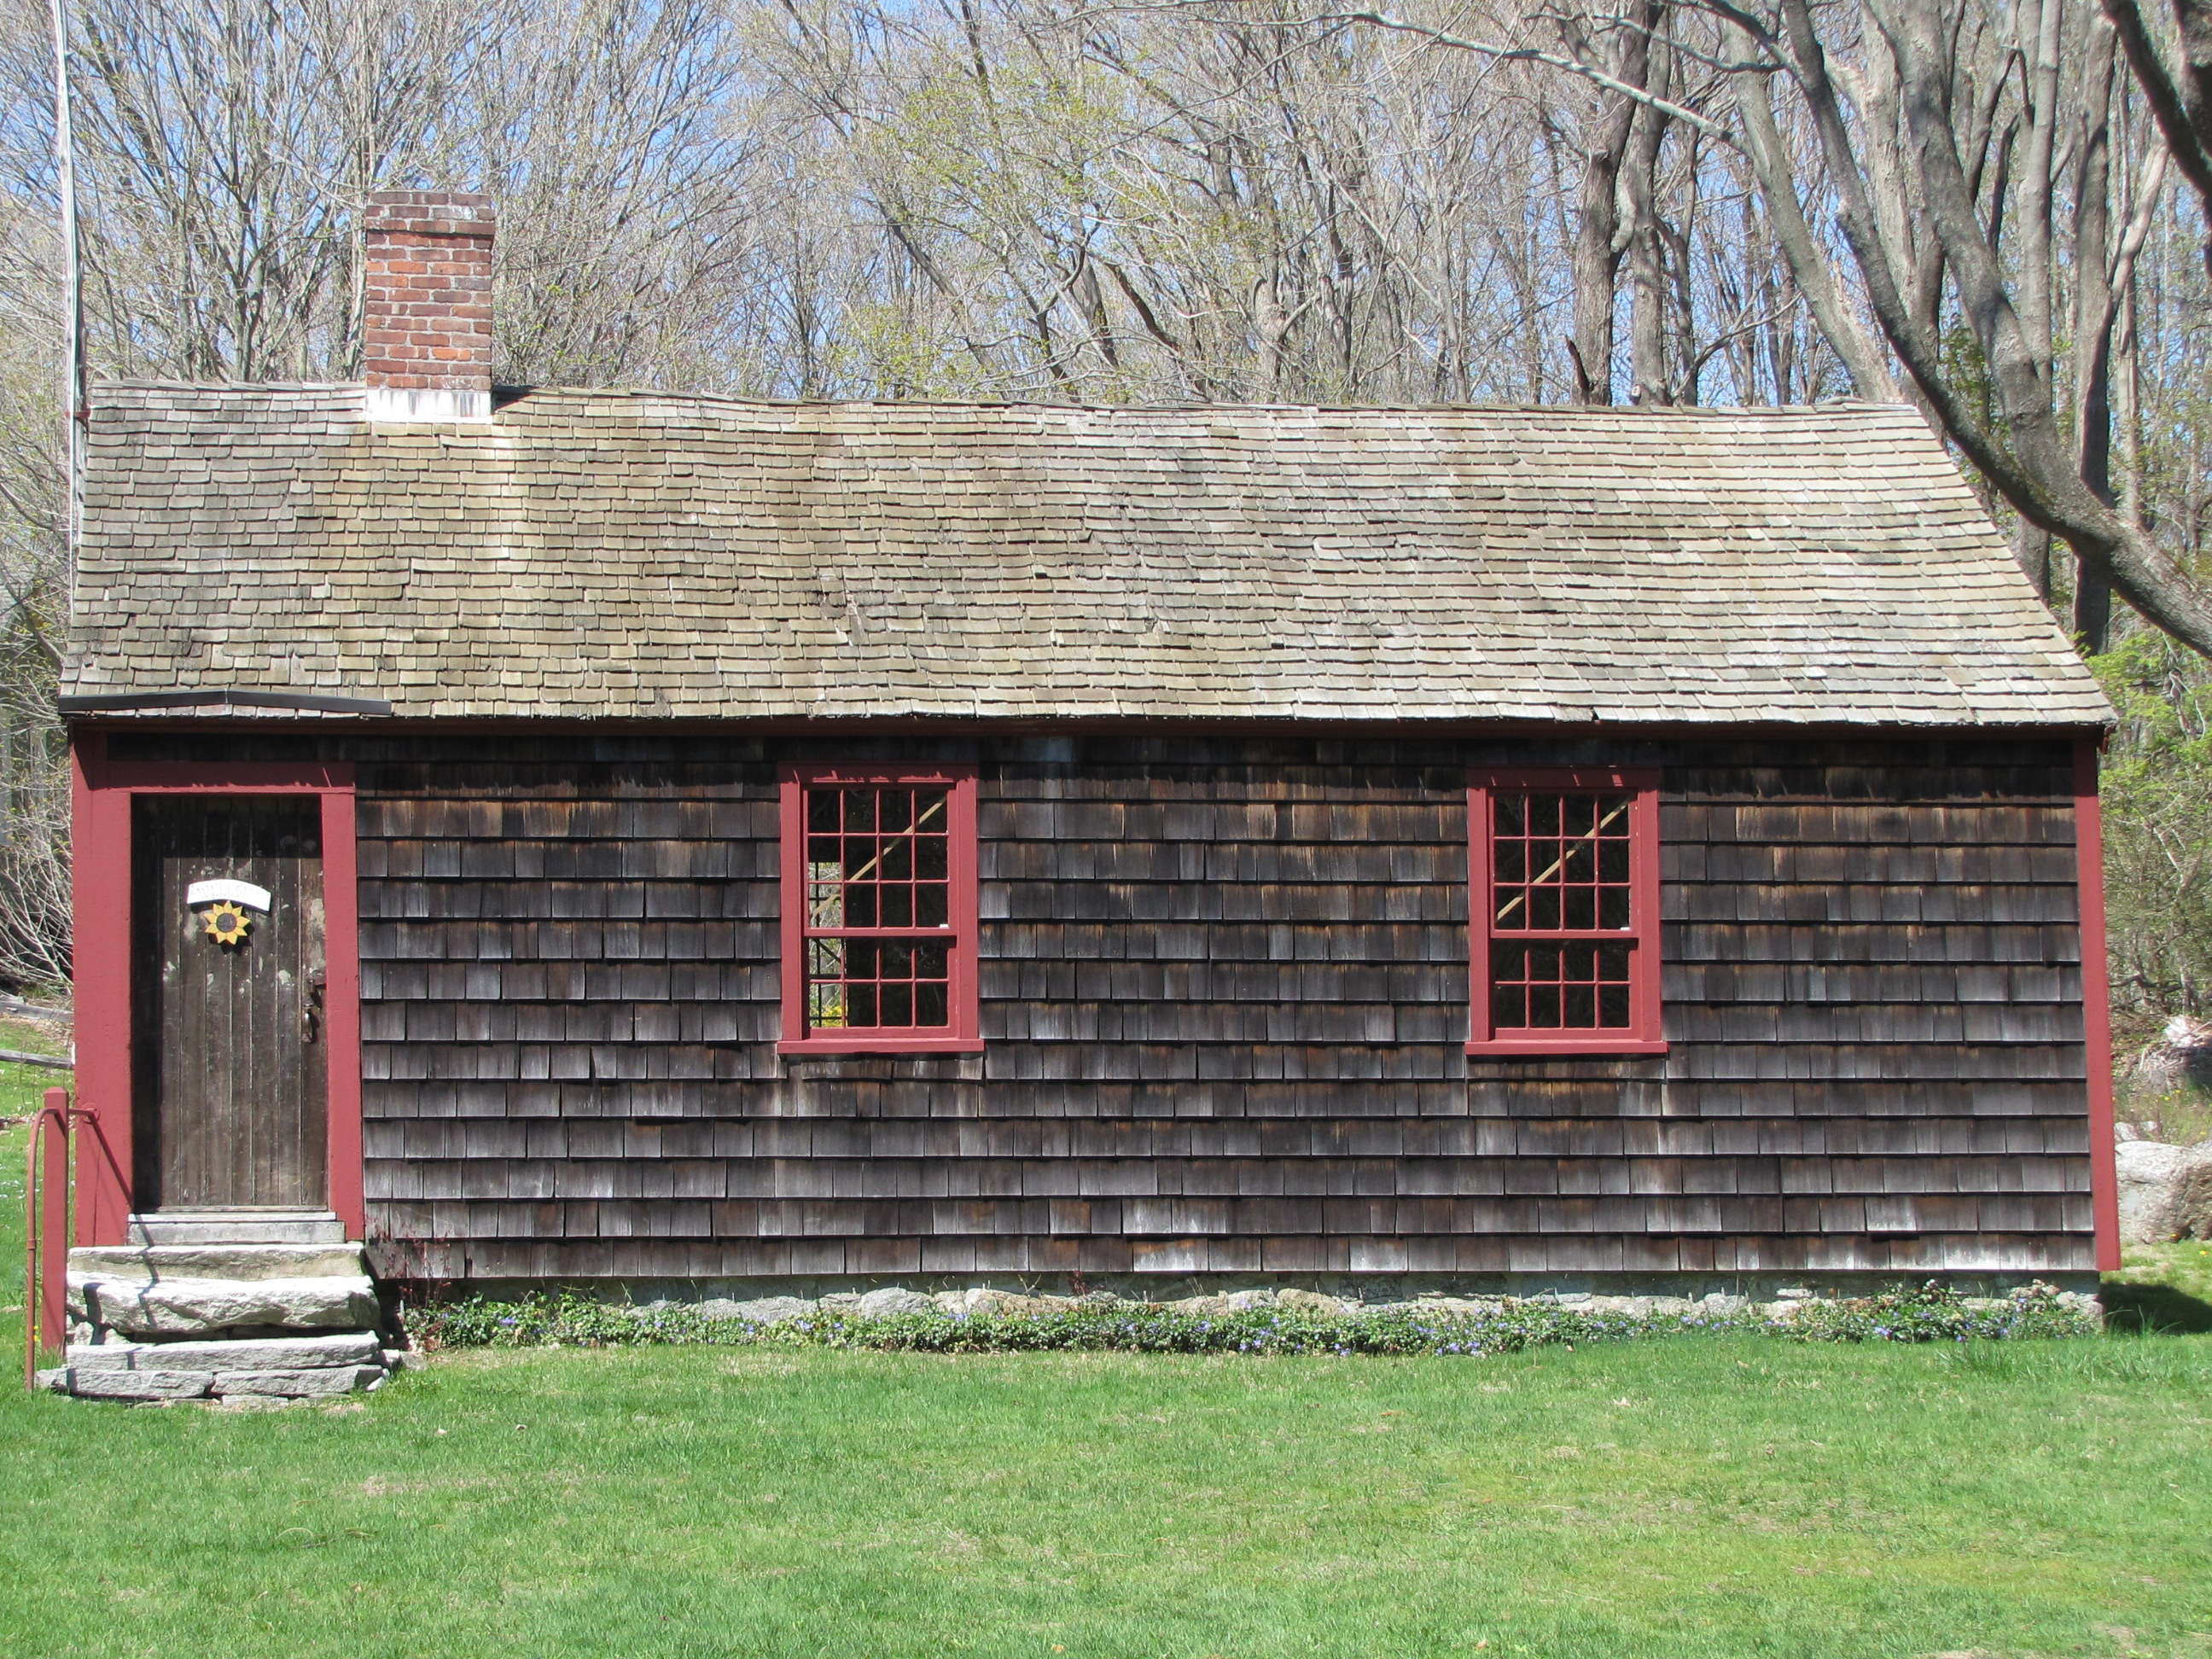 1790 Schoolhouse, Monroe, Connecticut